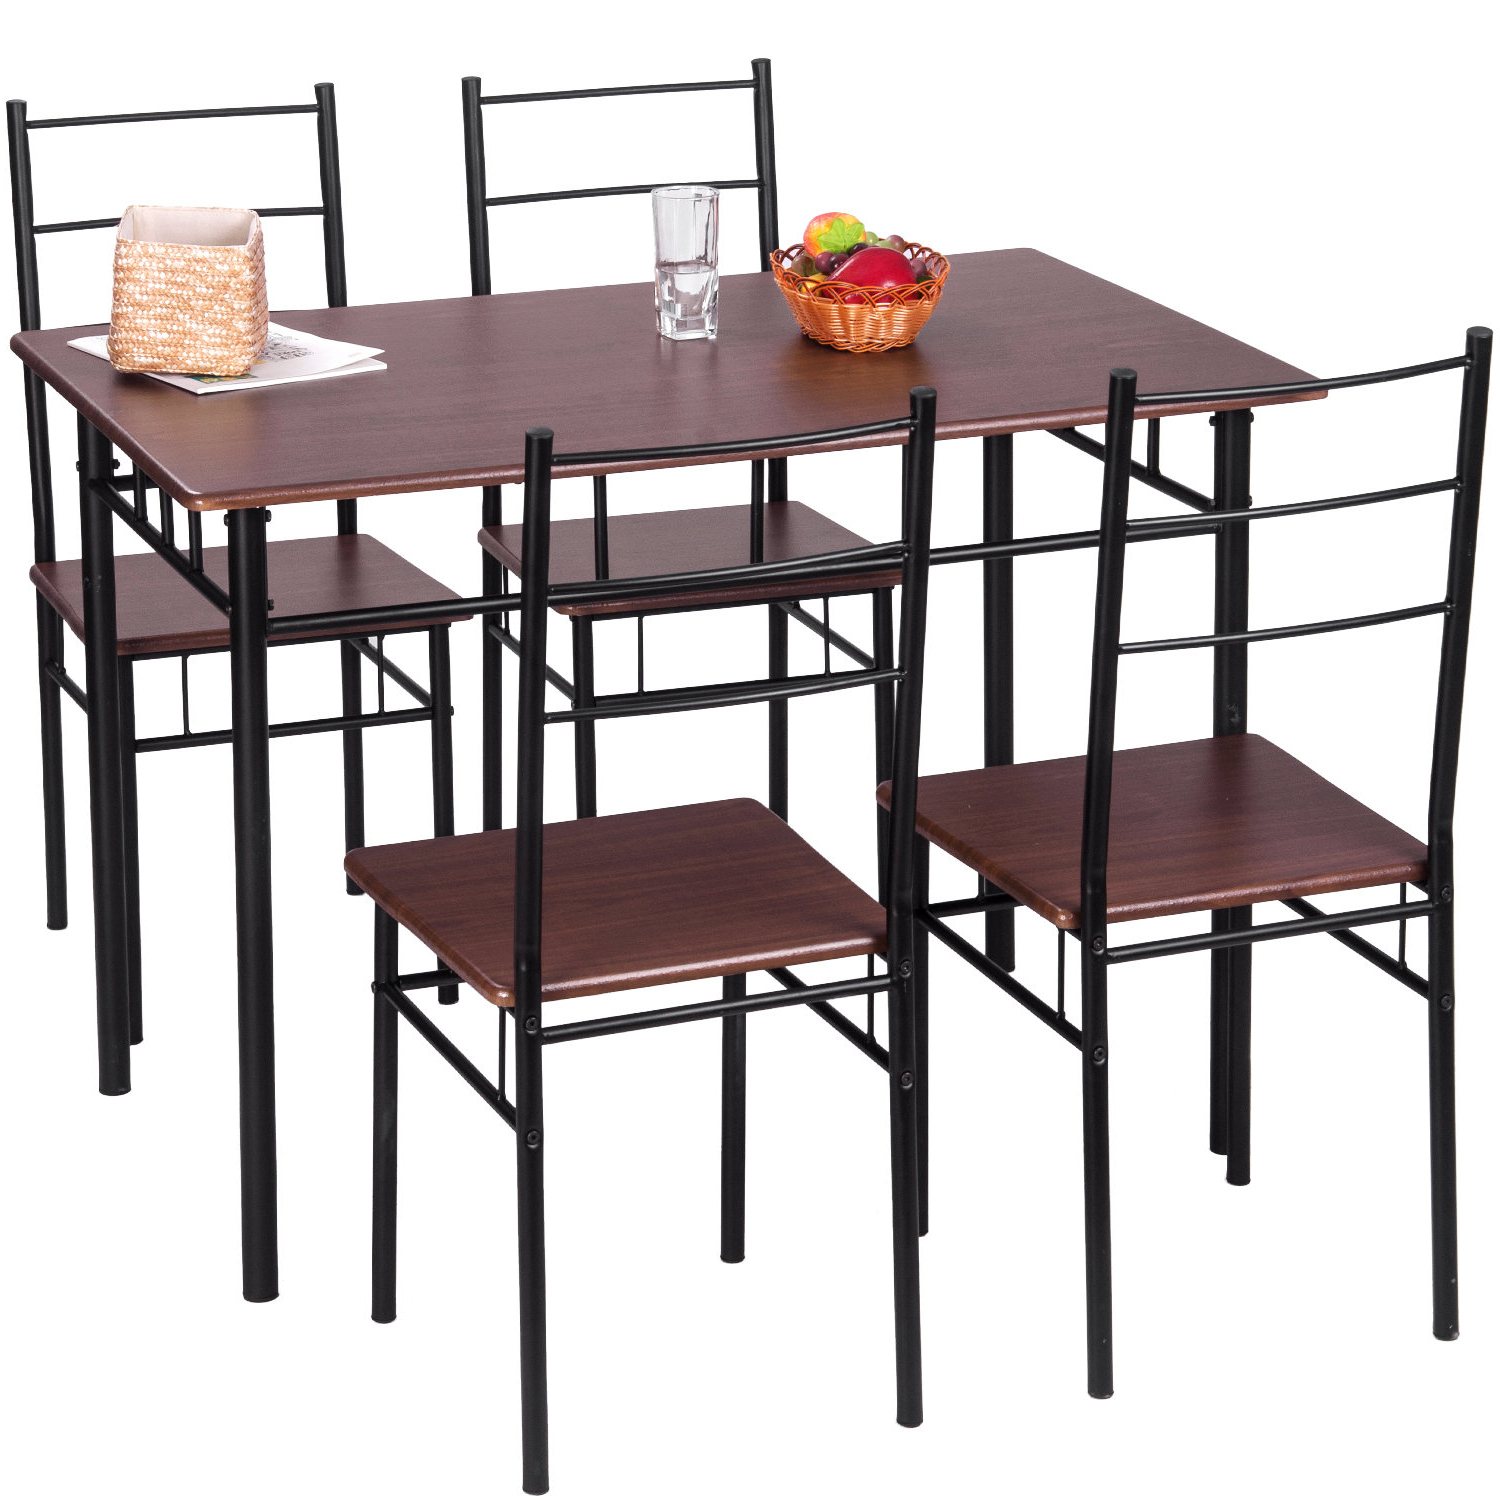 5 Piece Breakfast Nook Dining Set In 2017 Castellanos Modern 5 Piece Counter Height Dining Sets (View 3 of 20)